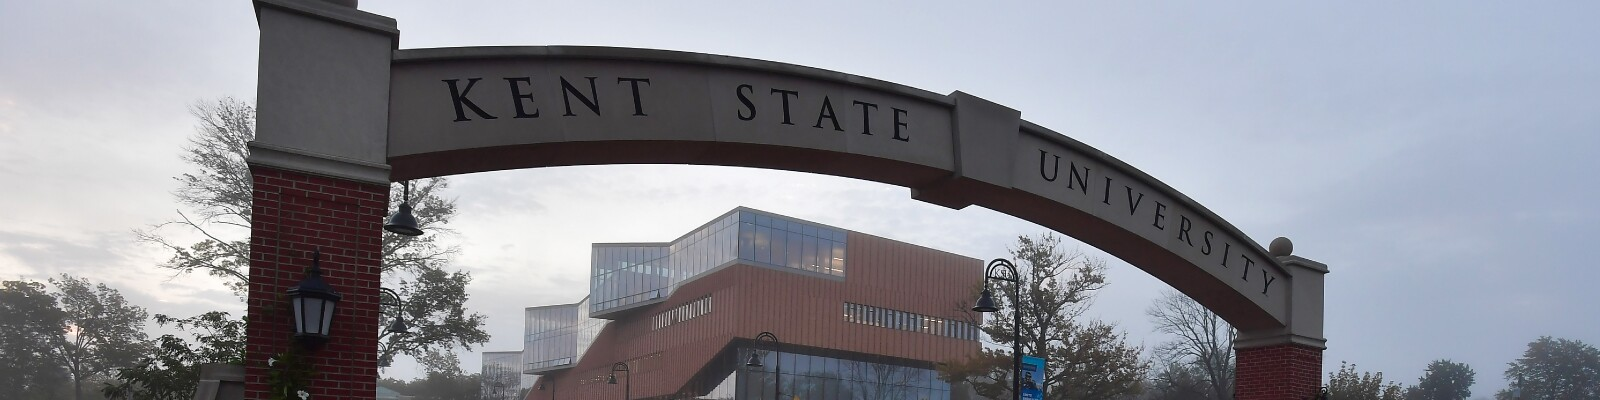 Kent State University arch sign on campus